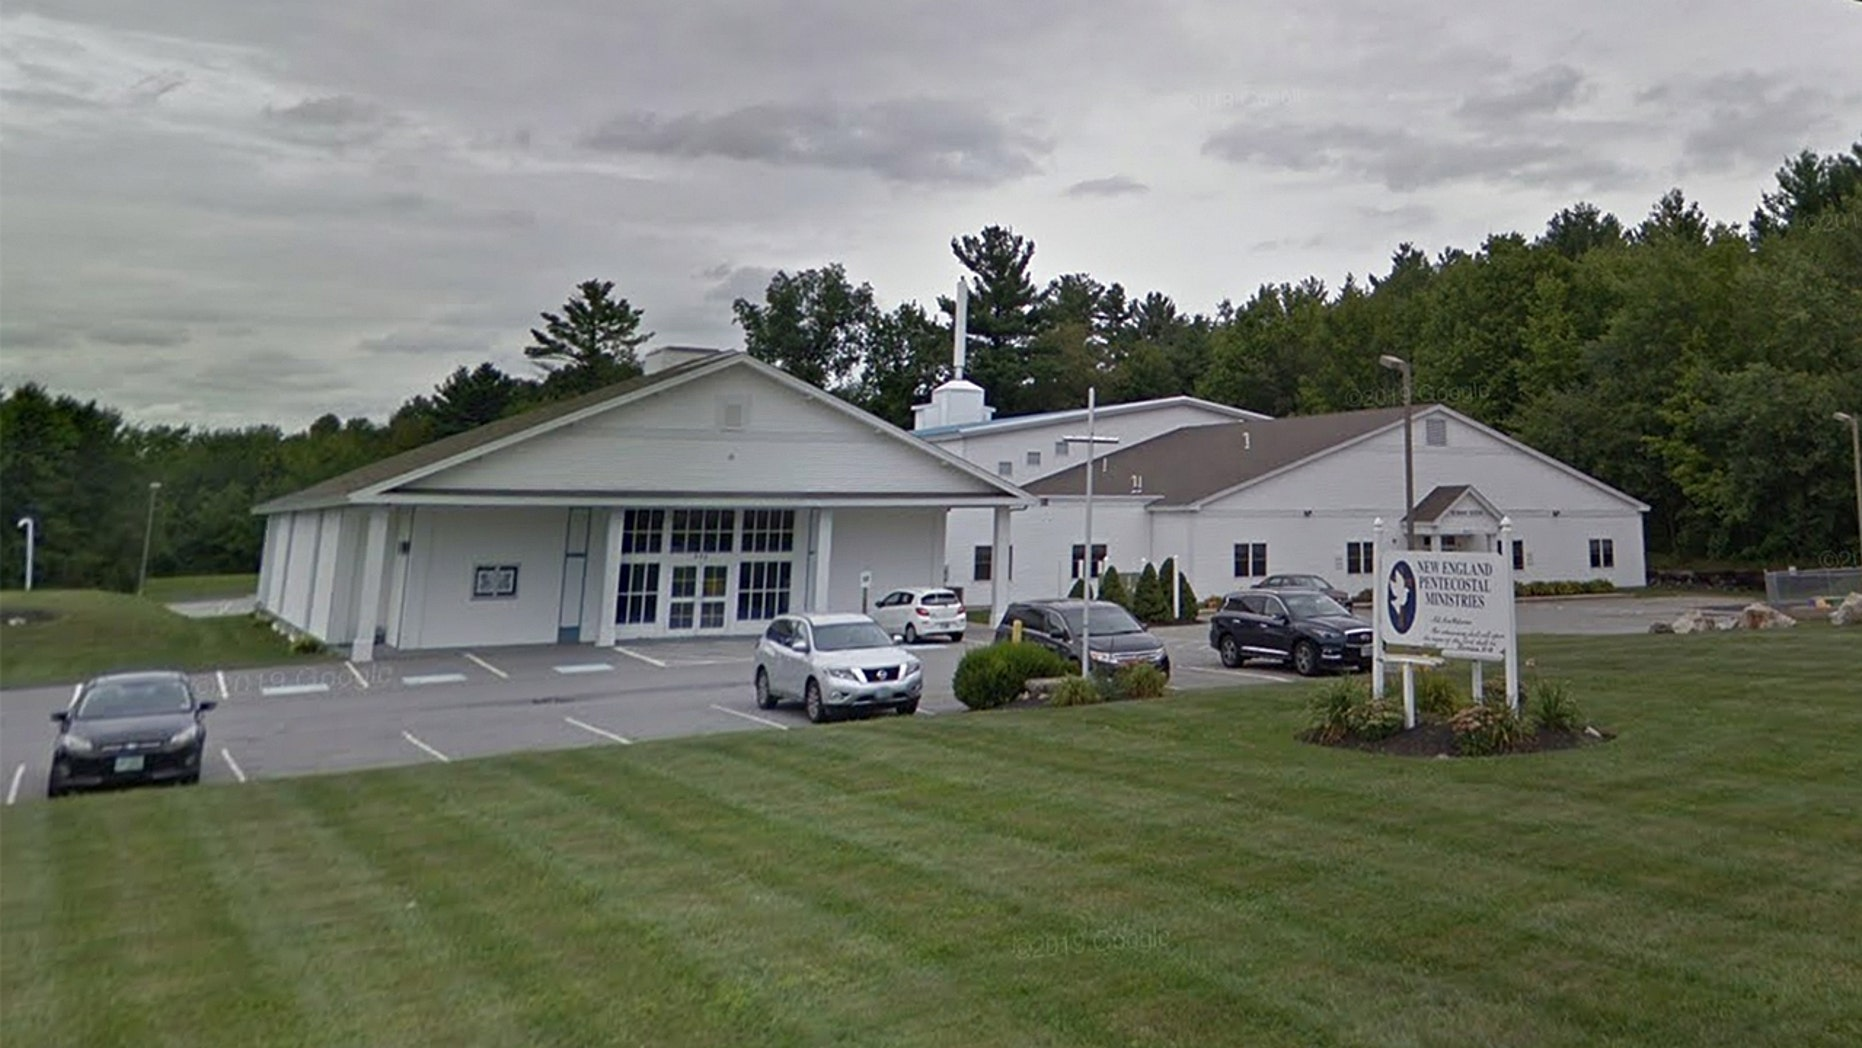 Westlake Legal Group New-England-Pentecostal-Ministries-google-maps 2 wounded in shooting at New Hampshire church during wedding Julia Musto fox-news/us/us-regions/northeast/new-hampshire fox-news/lifestyle/weddings fox-news/great-outdoors/shooting fox news fnc/us fnc article 5fea6a68-c950-5d6c-a3d8-55001783b8ef